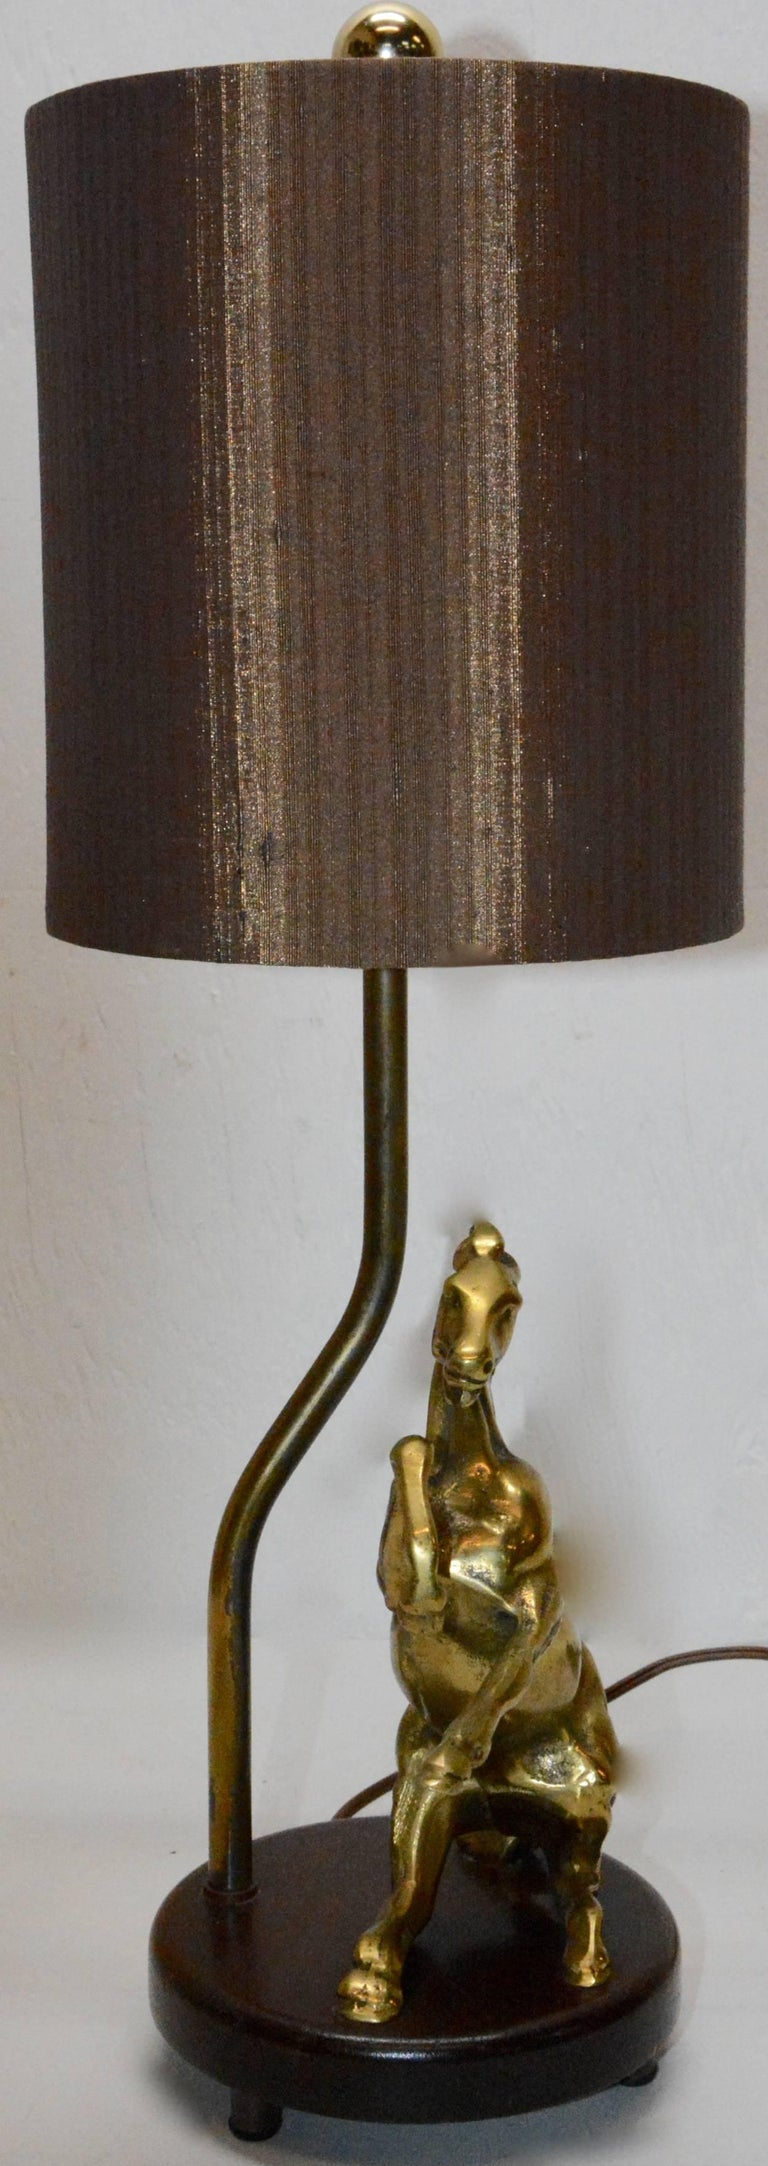 American Vintage Solid Brass Horse Lamp with Shade For Sale